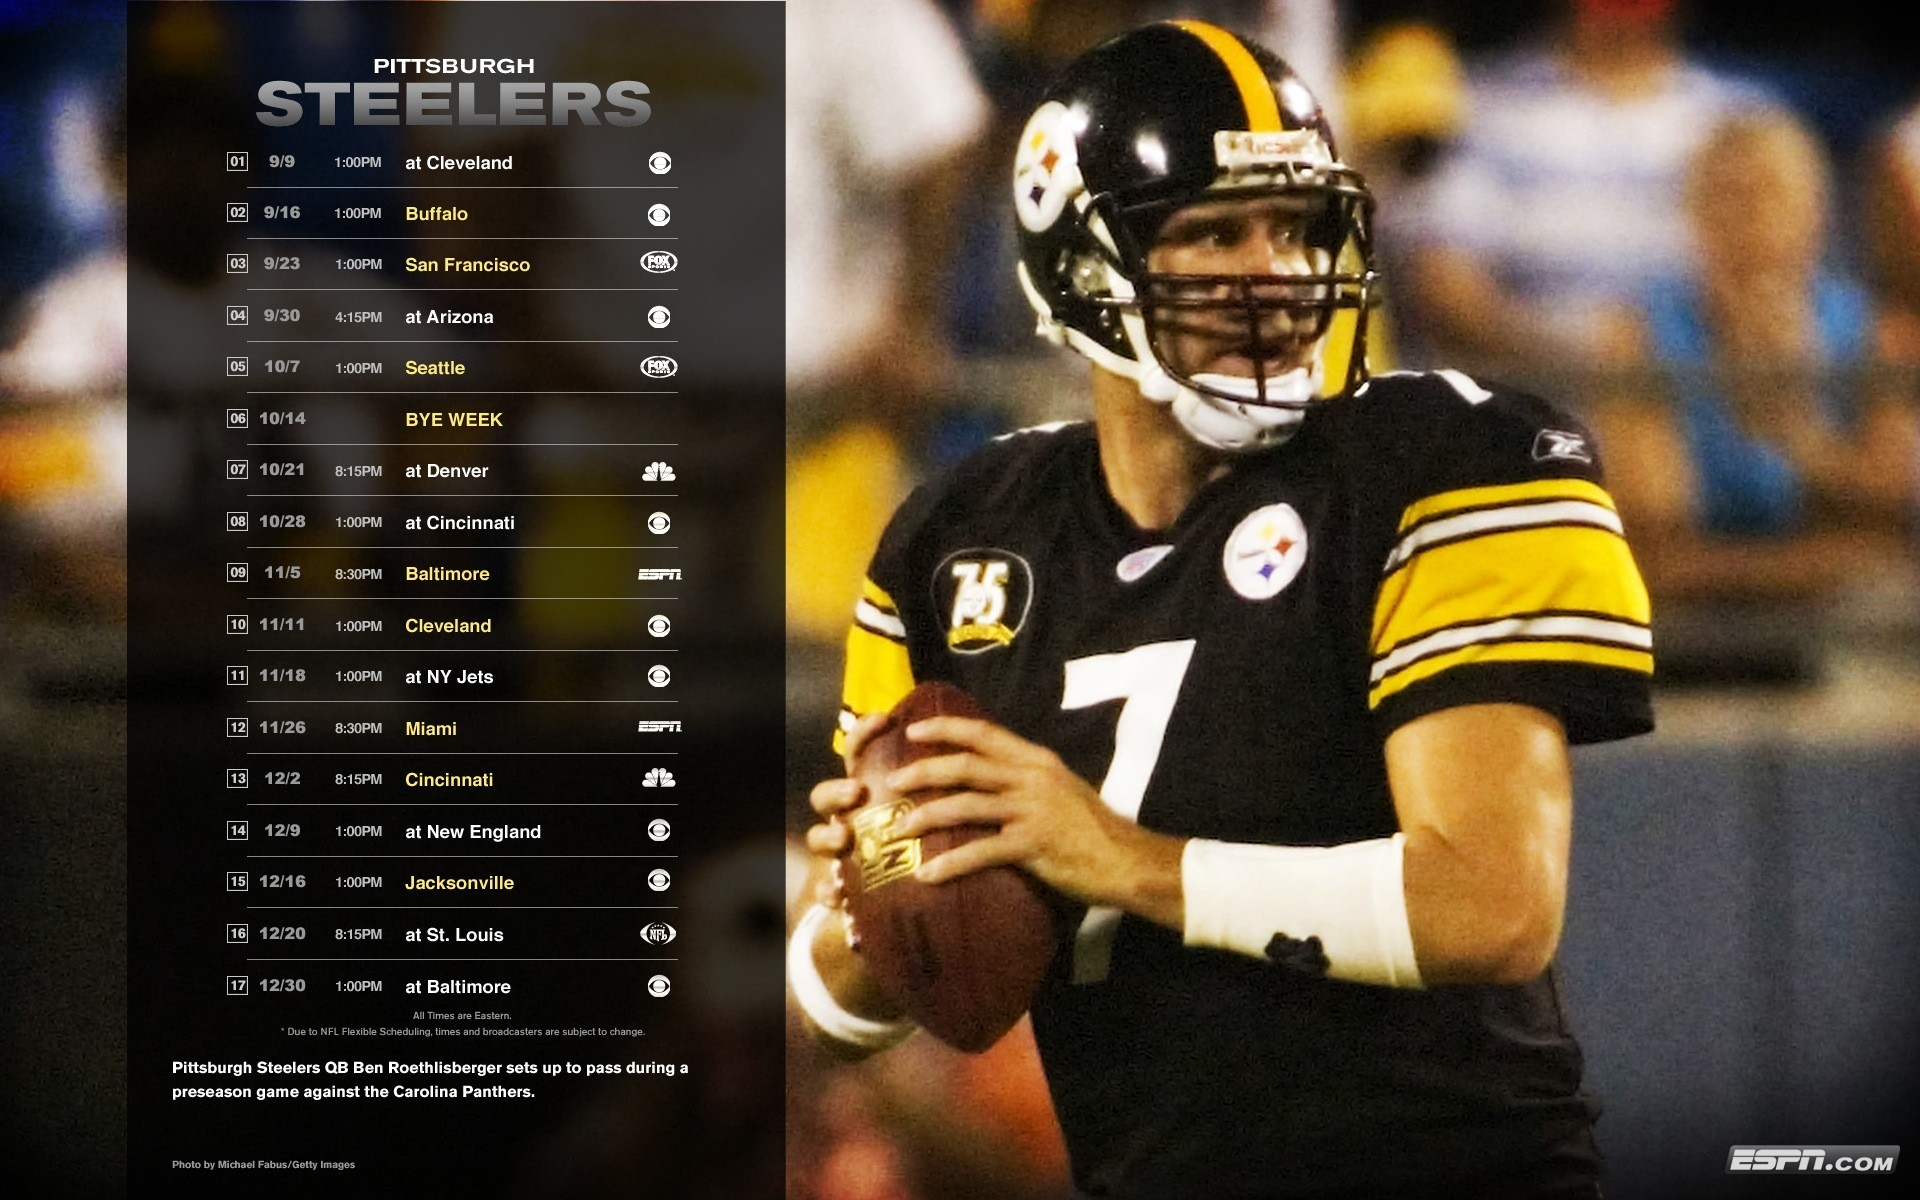 Pittsburgh Steelers Wallpaper Football Background | cute Wallpapers